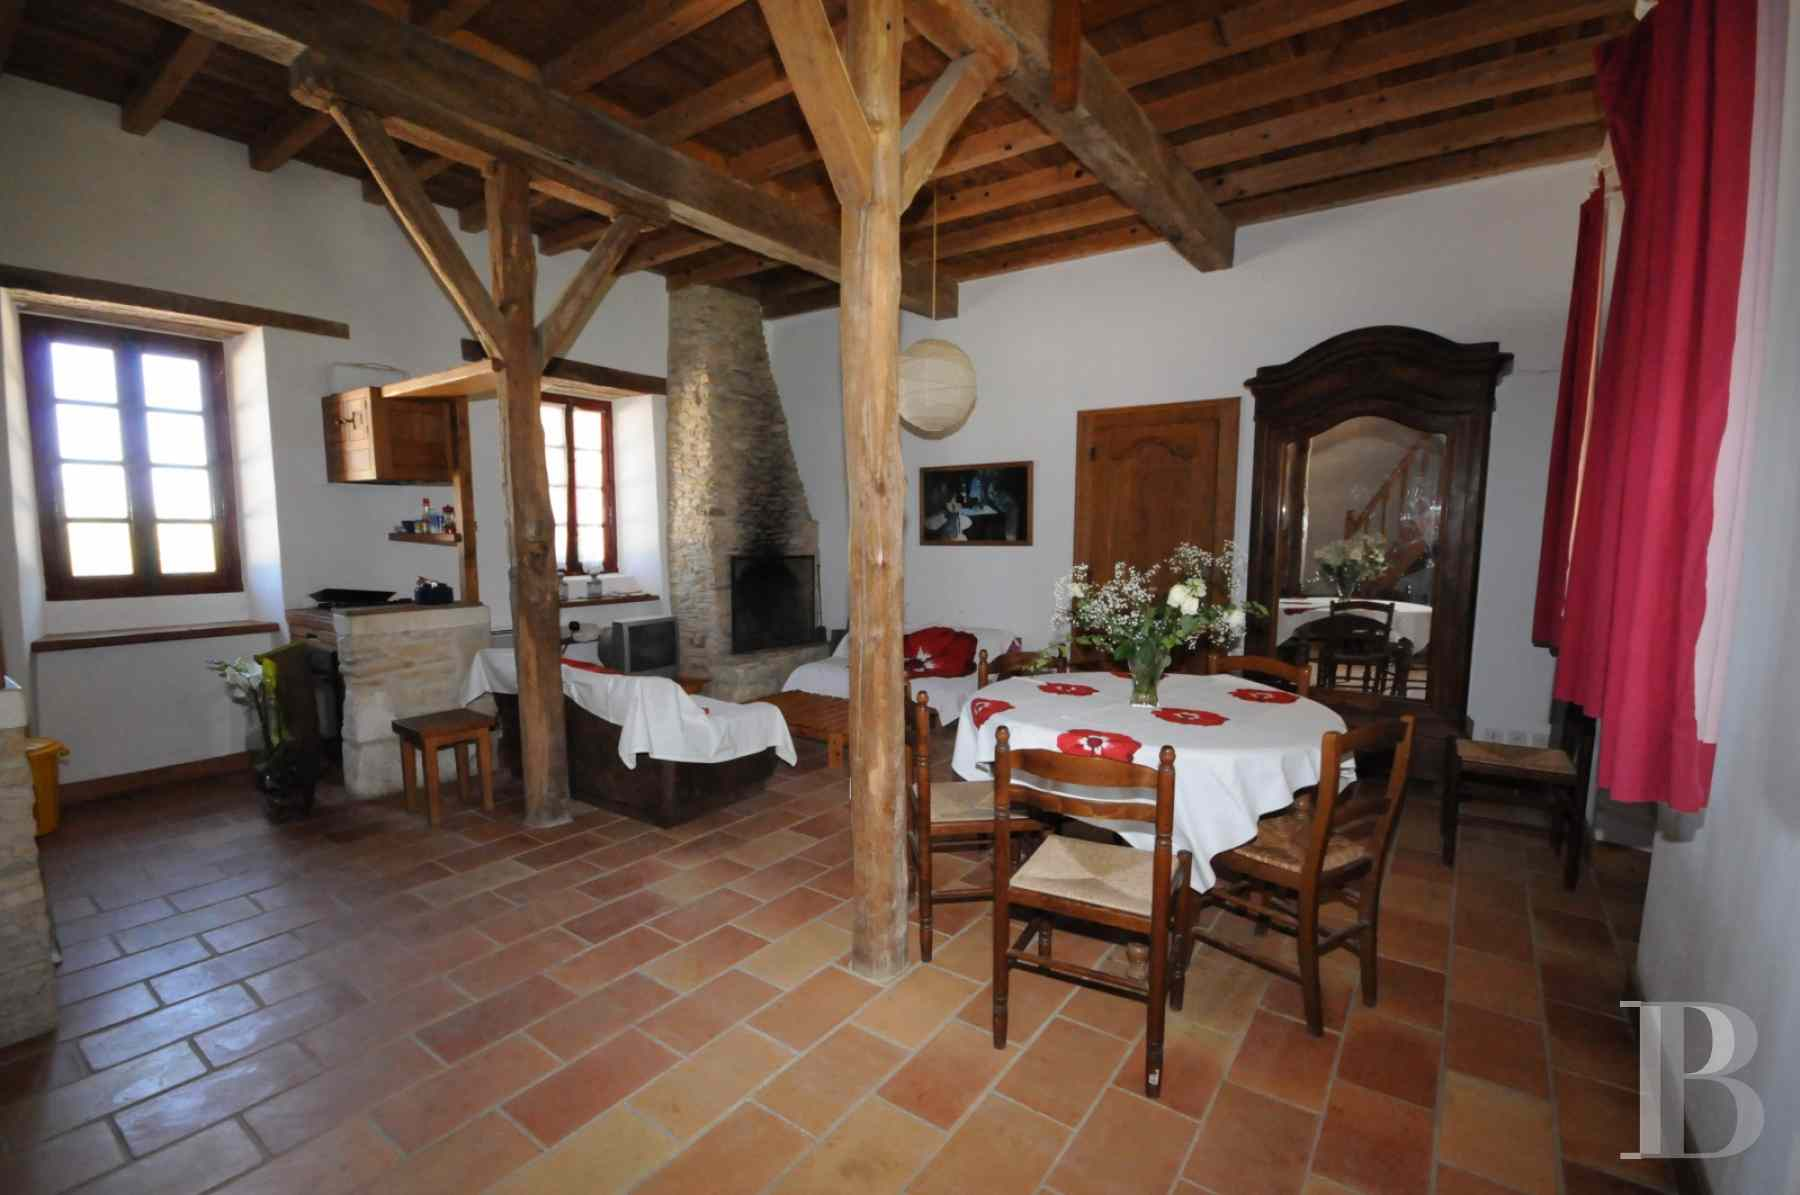 property for sale France midi pyrenees residences historic - 14 zoom